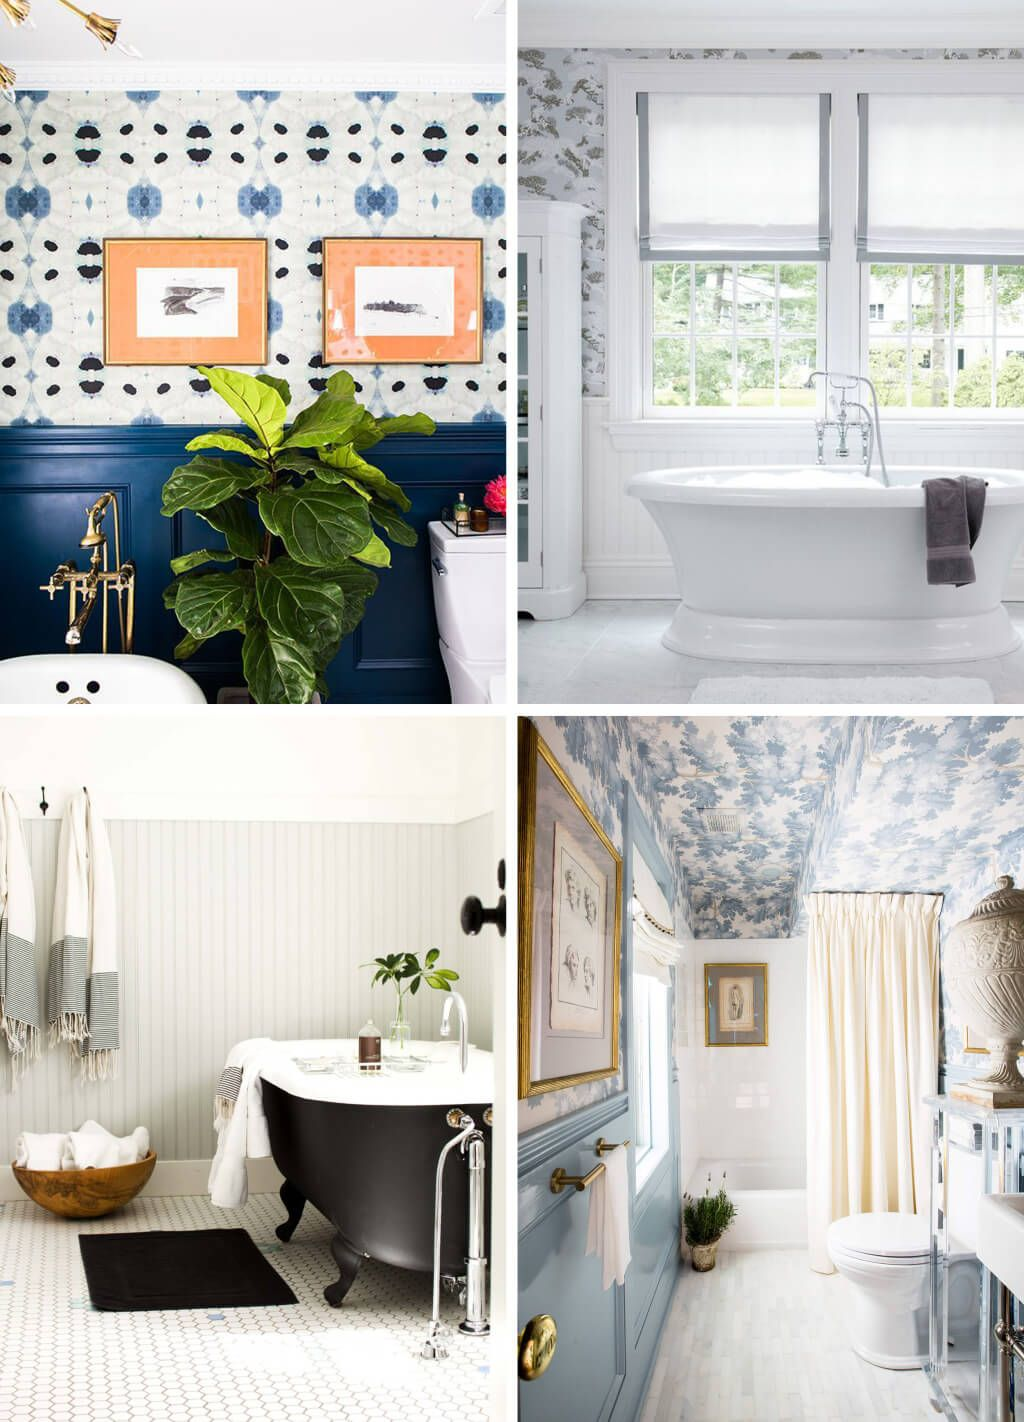 Top left quadrant - richly colored wainscoting, great wallpaper ...